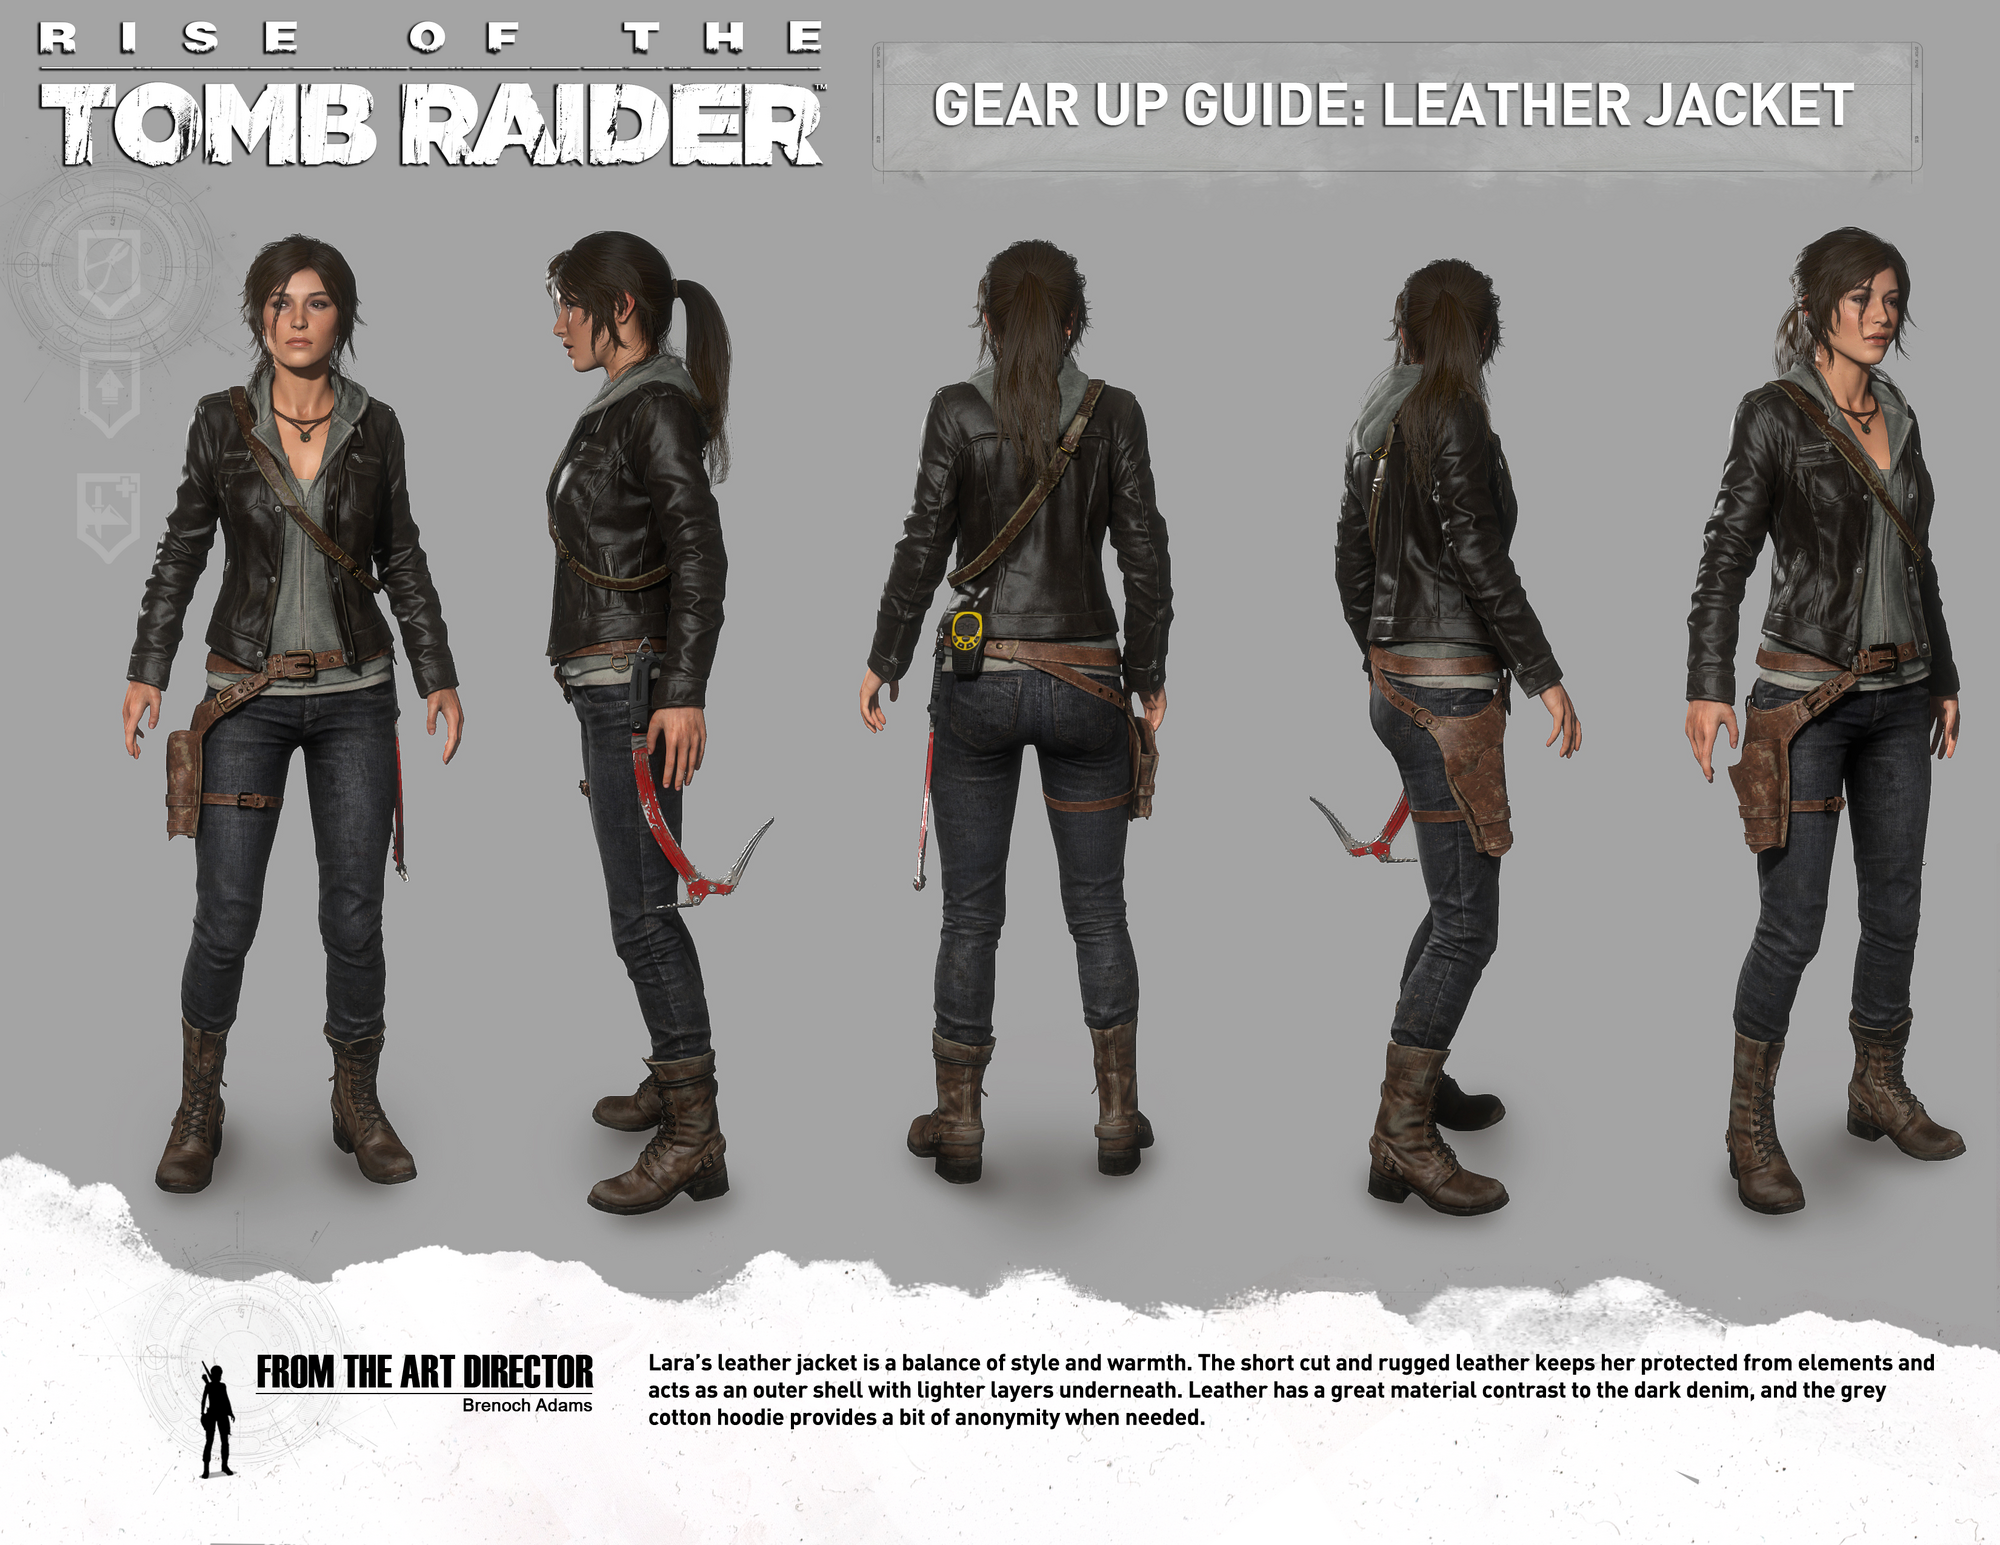 Leather jacket png - Image Rottr Leather Jacket Png Lara Croft Wiki Fandom Powered By Wikia